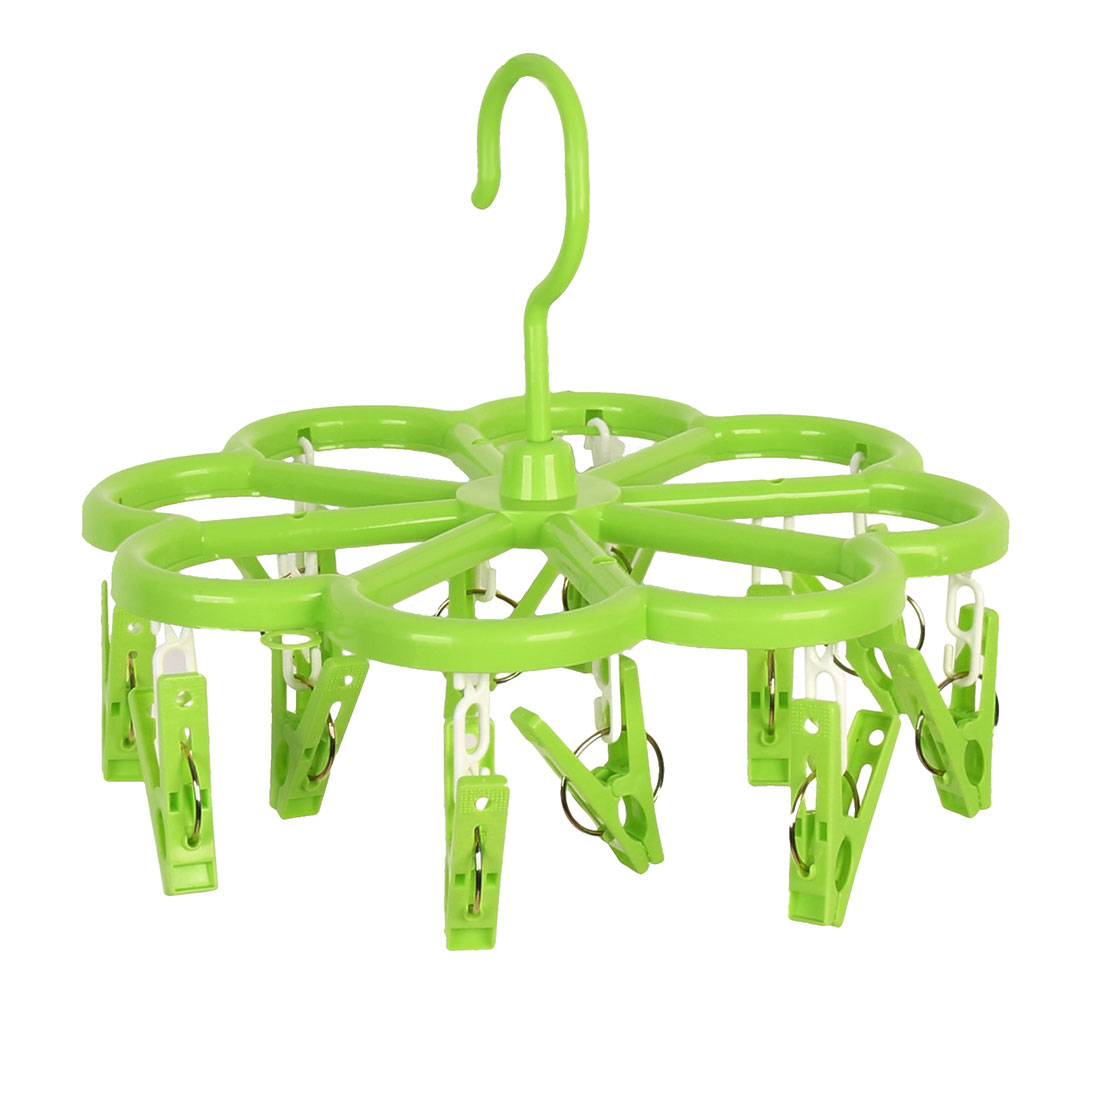 Household Flower Shaped Swivel Hook 12 Pegs Drying Rack Clothes Hanger Green